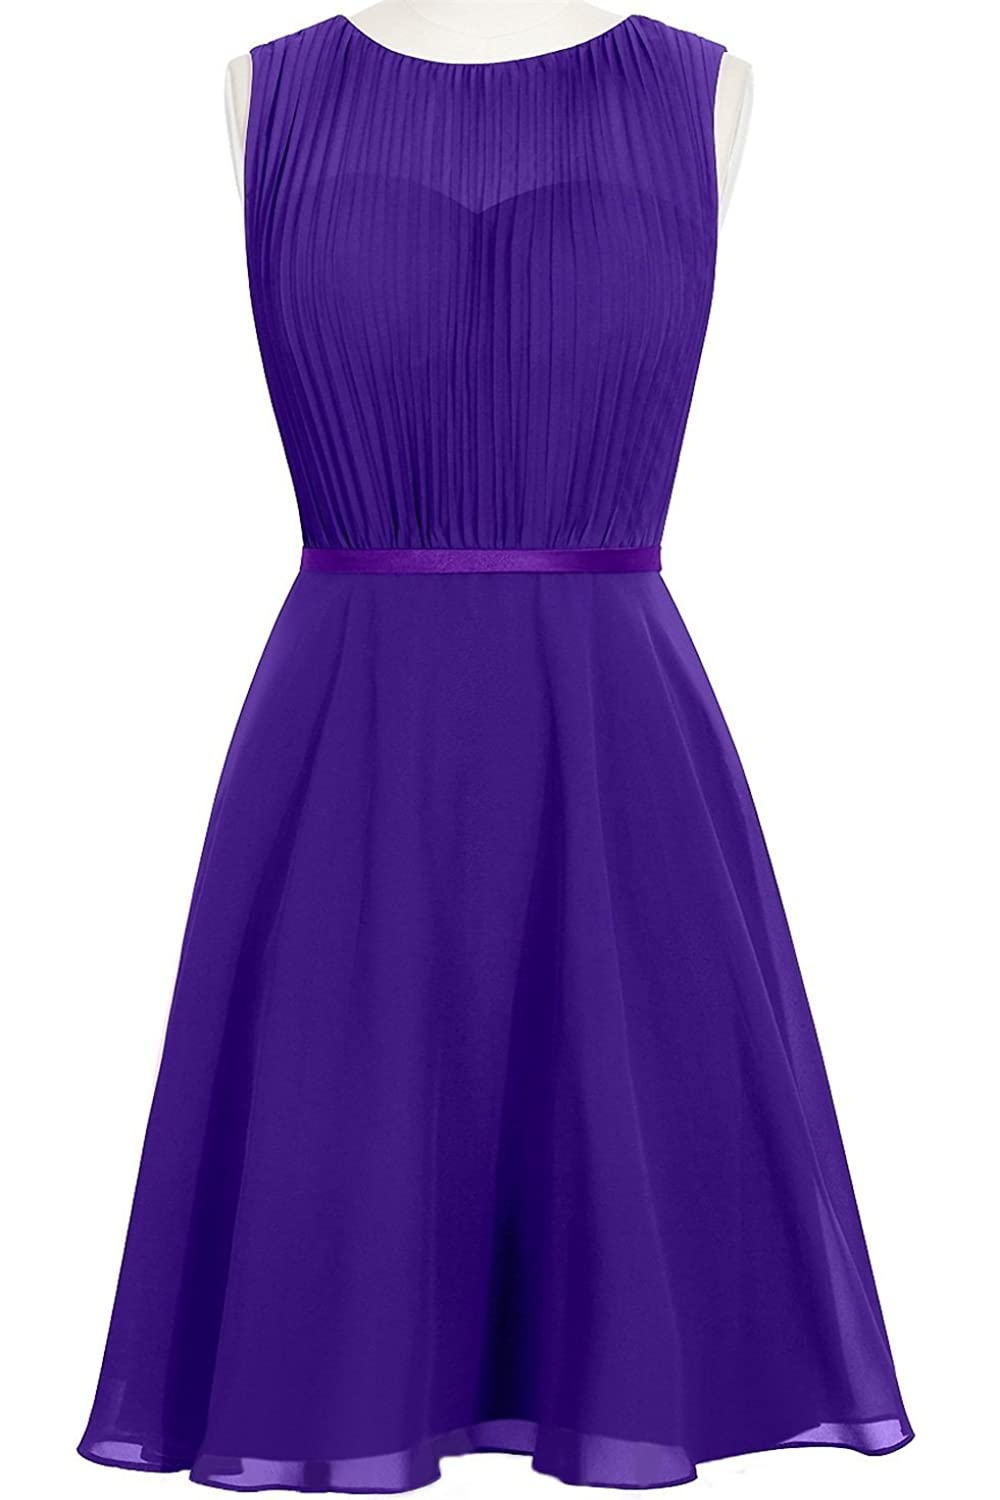 MittyDresses 2015 New Cocktail Homecoming Dresses for Girl Evening Party Size 12 US Regency